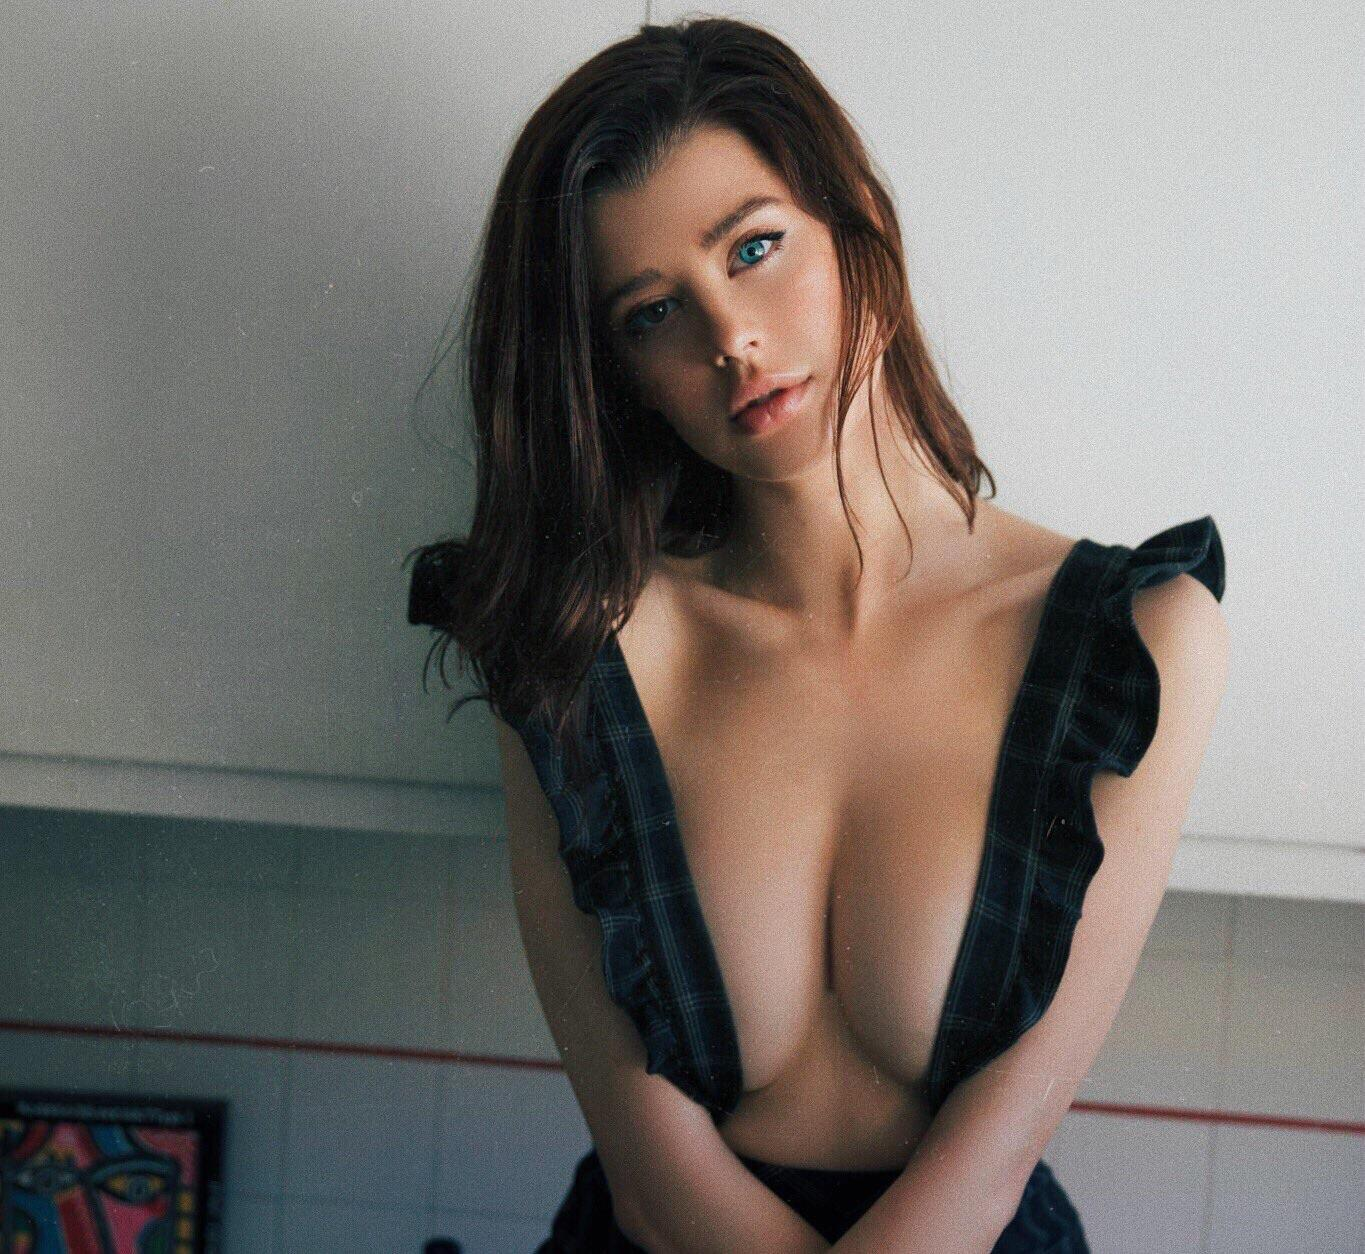 70+ Hot Pictures Of Sarah McDaniel Which Will Drive You Nuts For Her   Best Of Comic Books